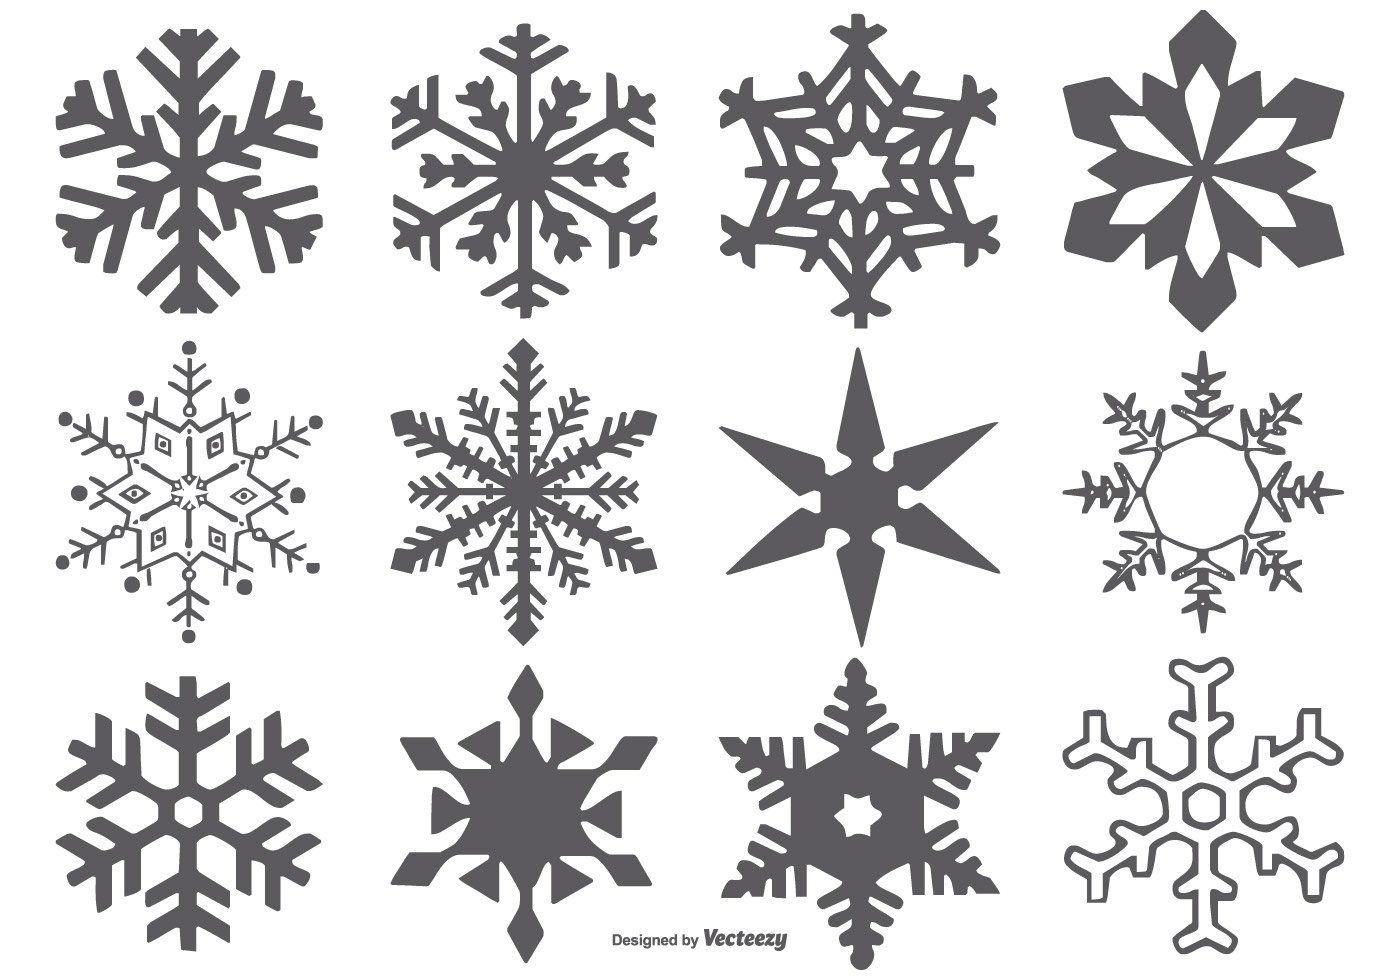 Here is a very useful set of vector snowflake shapes that